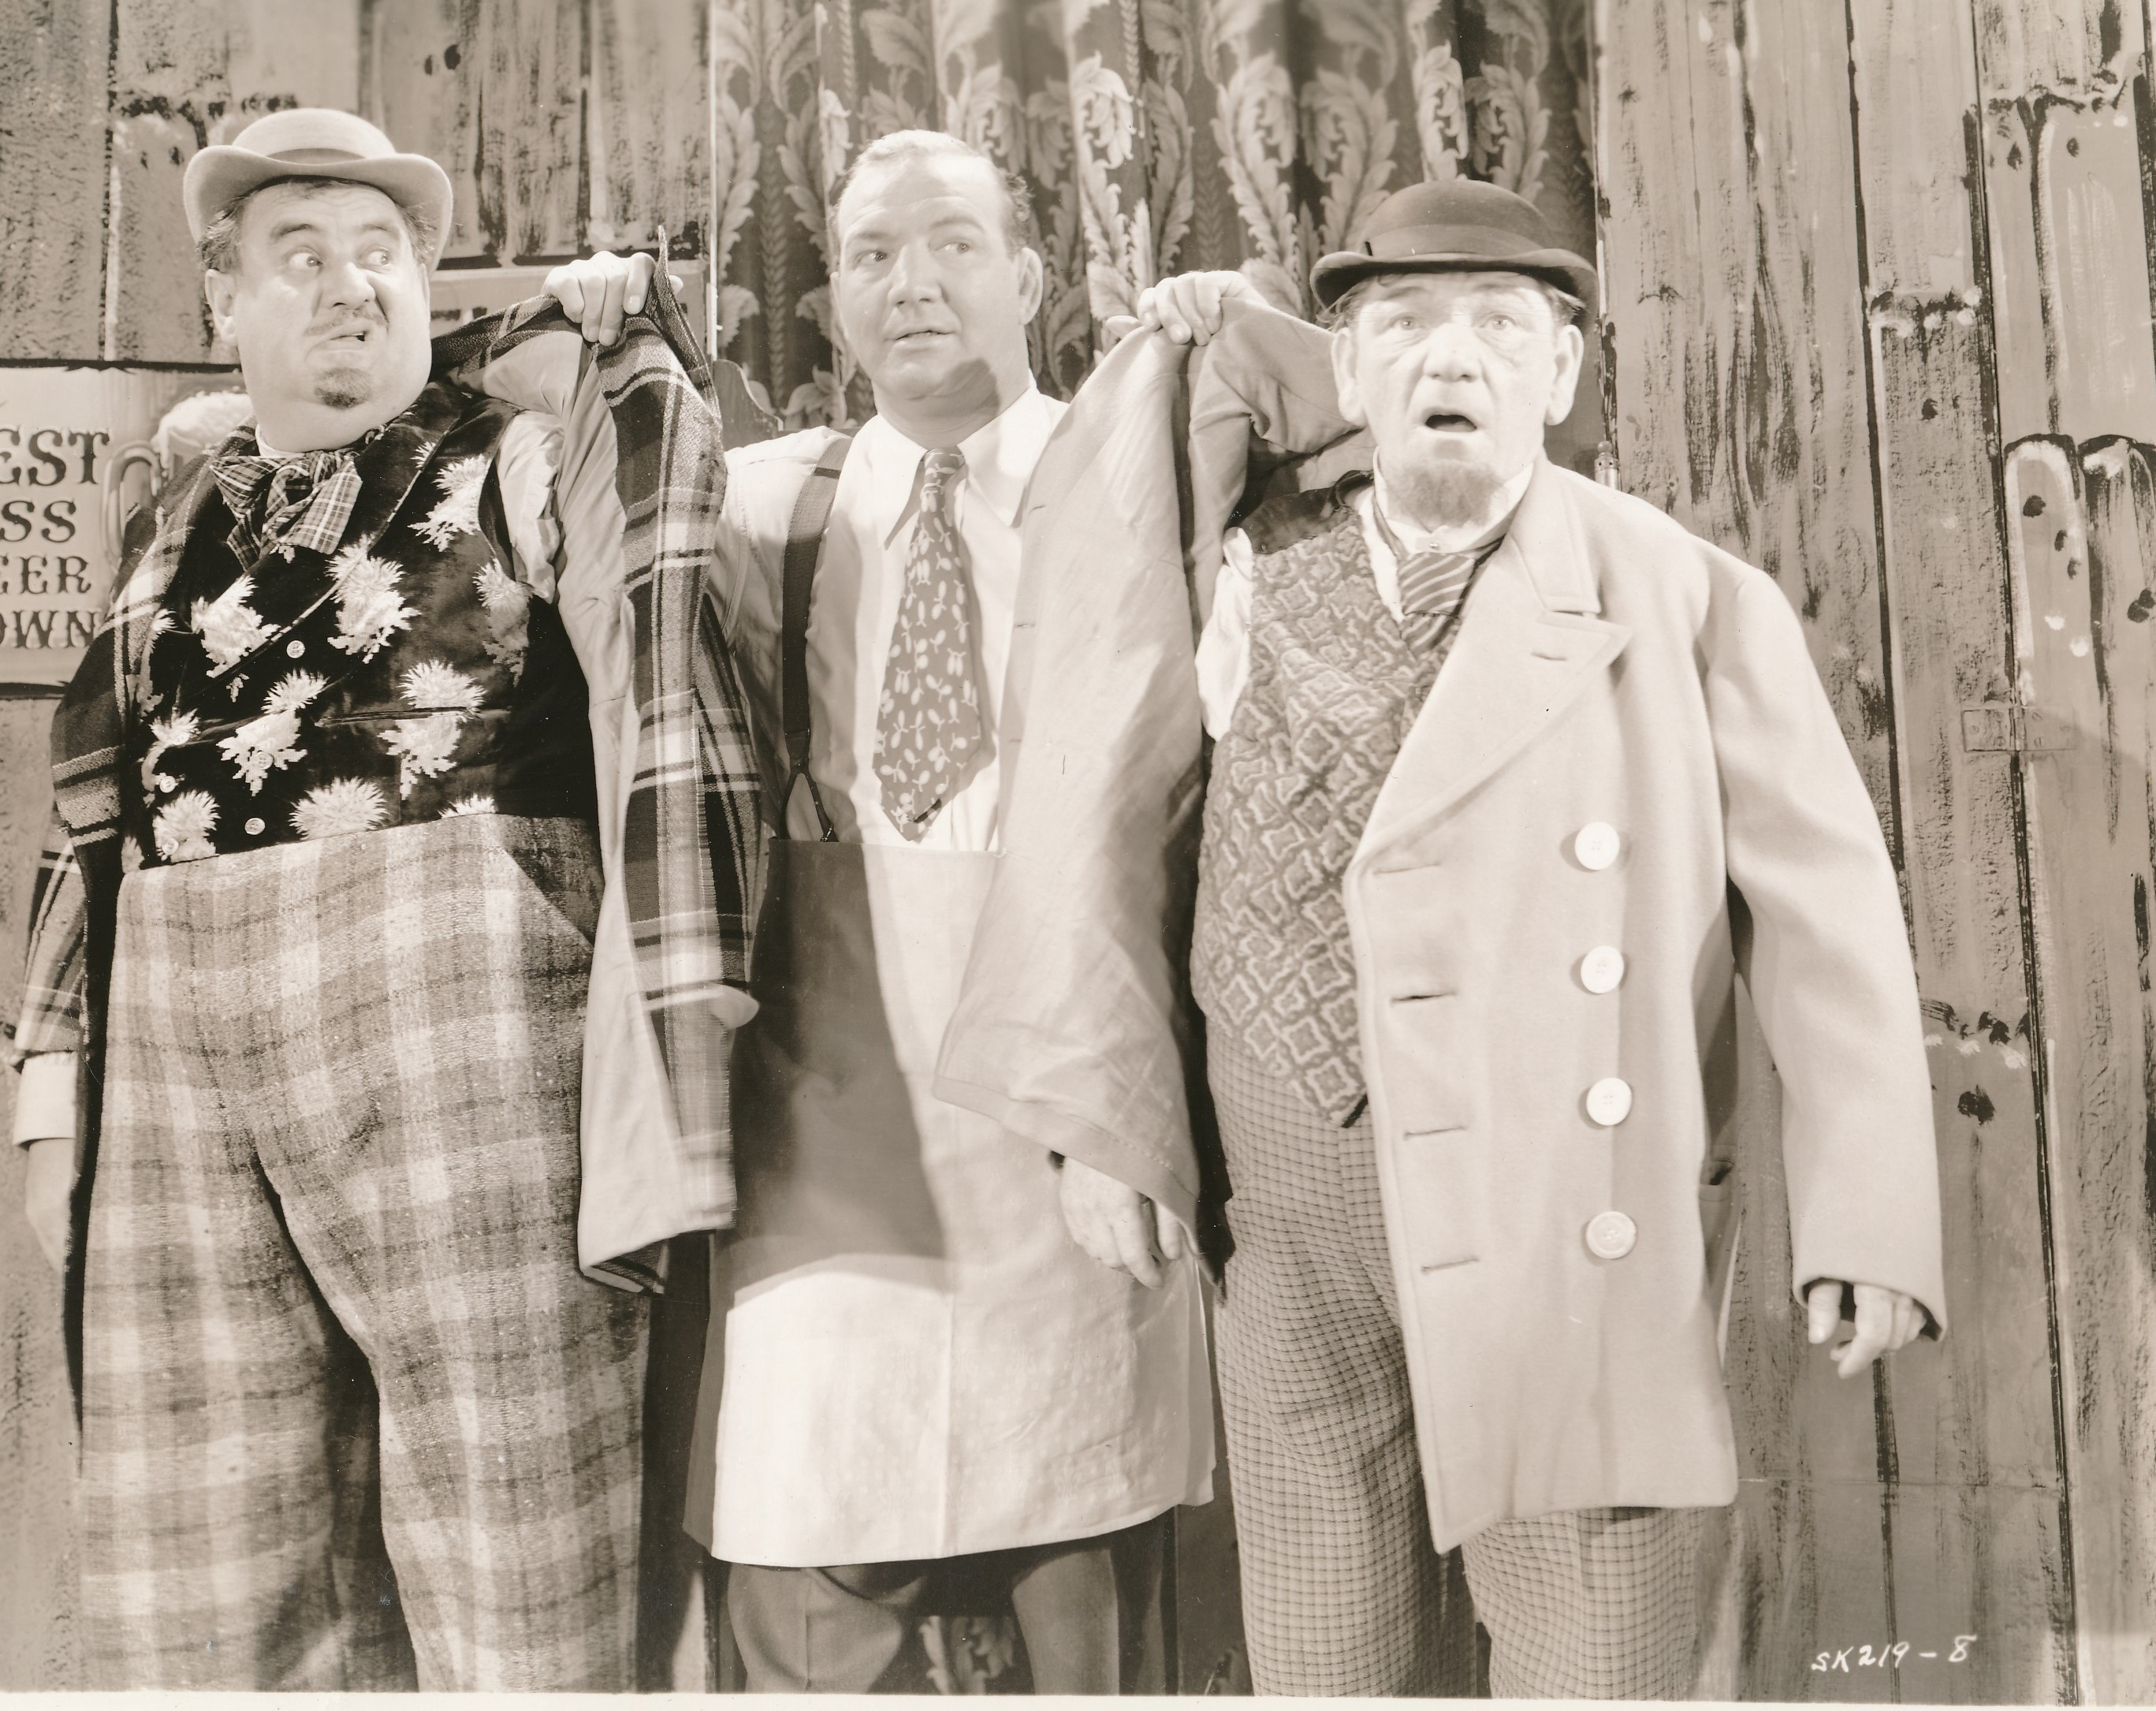 Gallery images and information: The Three Stooges Shemp